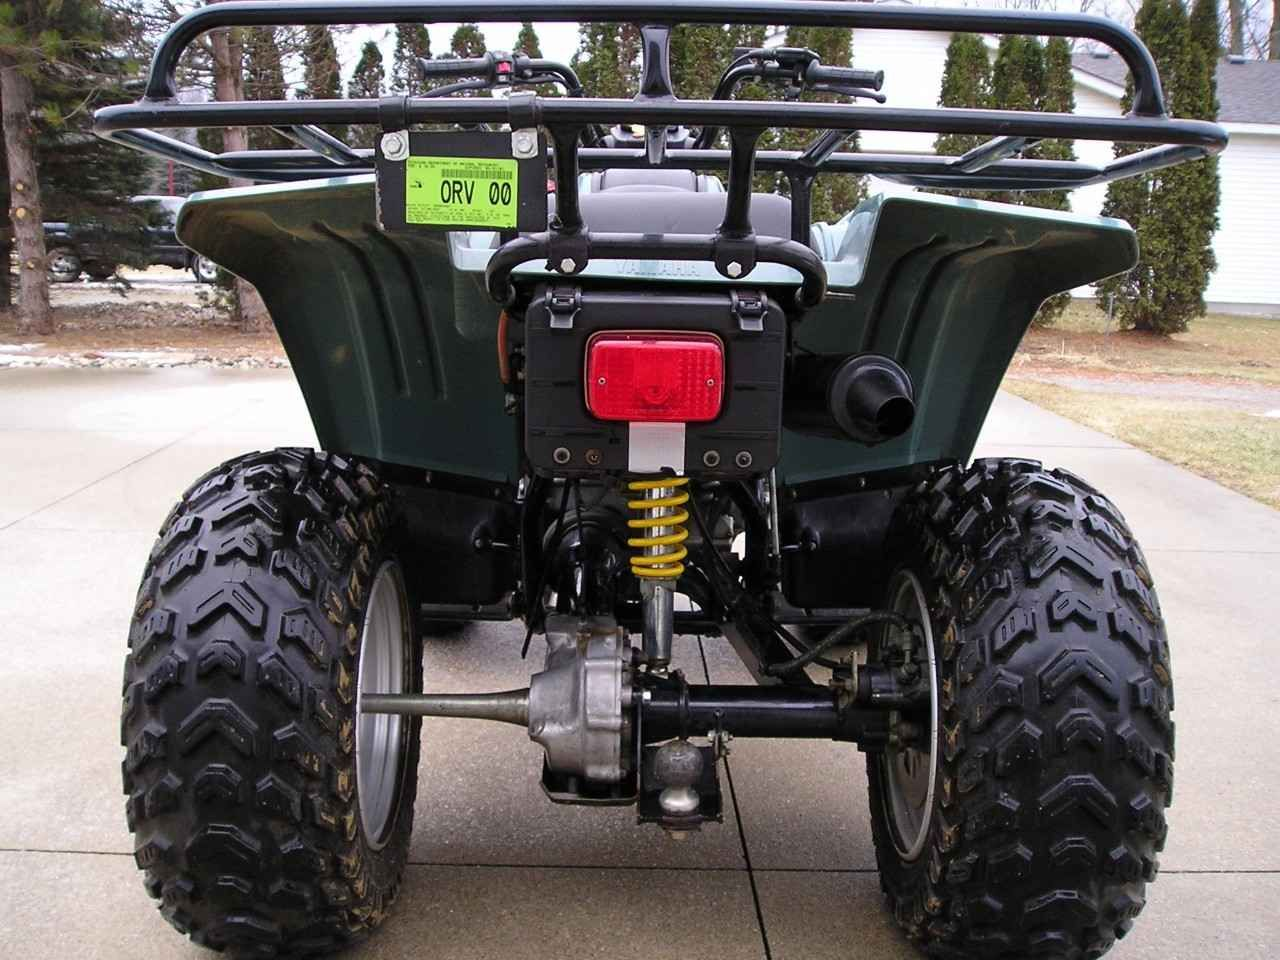 Used 1995 yamaha wolverine 350 atvs for sale in michigan yamaha used 1995 yamaha wolverine 350 atvs for sale in michigan fandeluxe Images